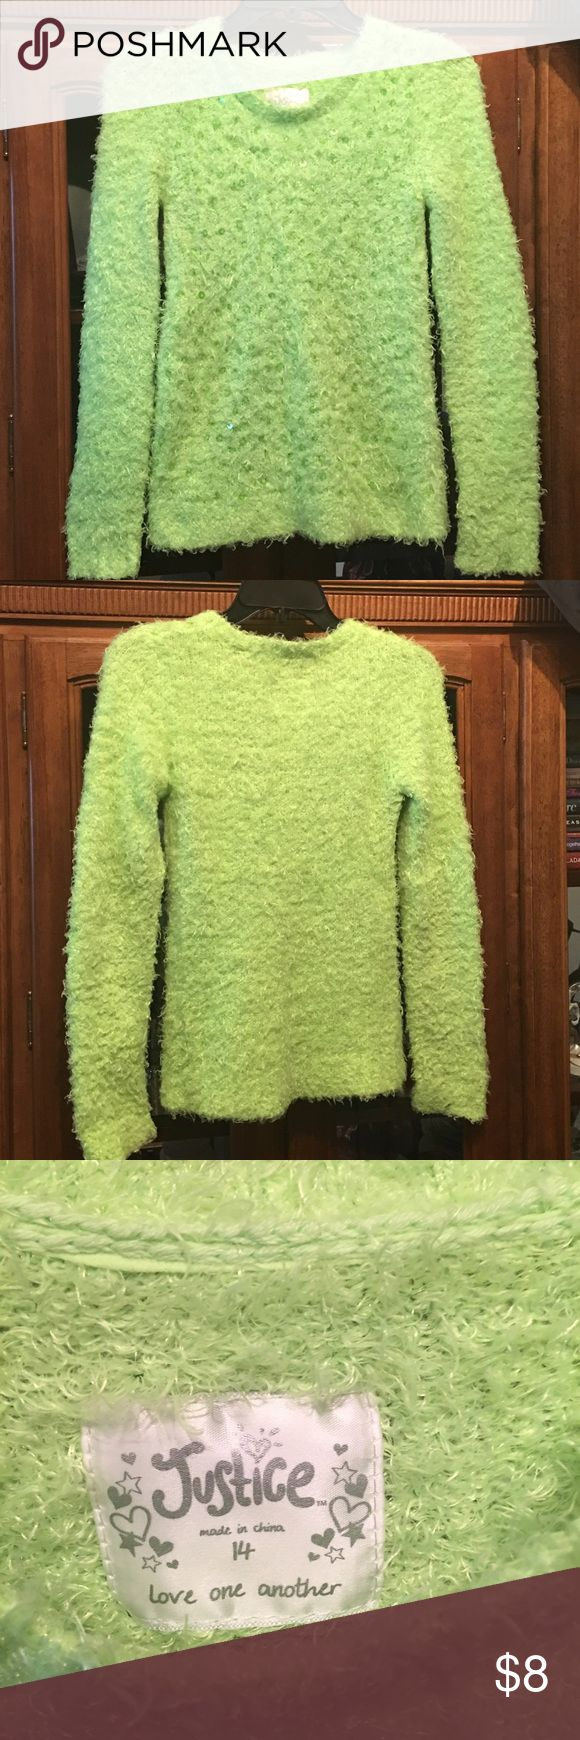 Justice girls fuzzy sweater Justice girls lime green super soft fuzzy long sleeve sweater with bling on front. No trades Justice Shirts & Tops Sweaters